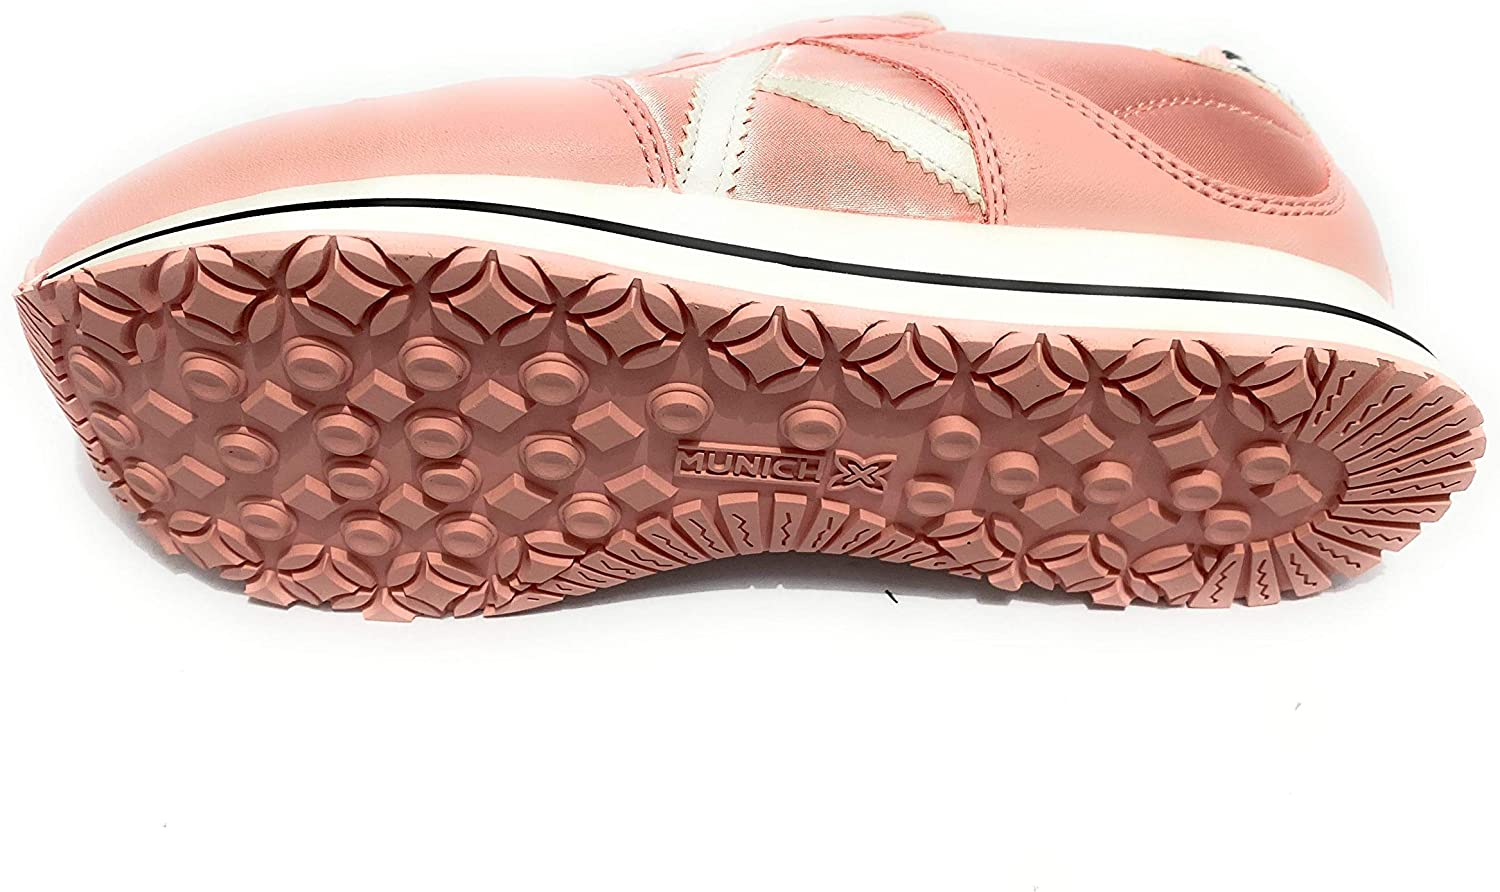 Munich Massana Sky Rose White 8810120 Animalier